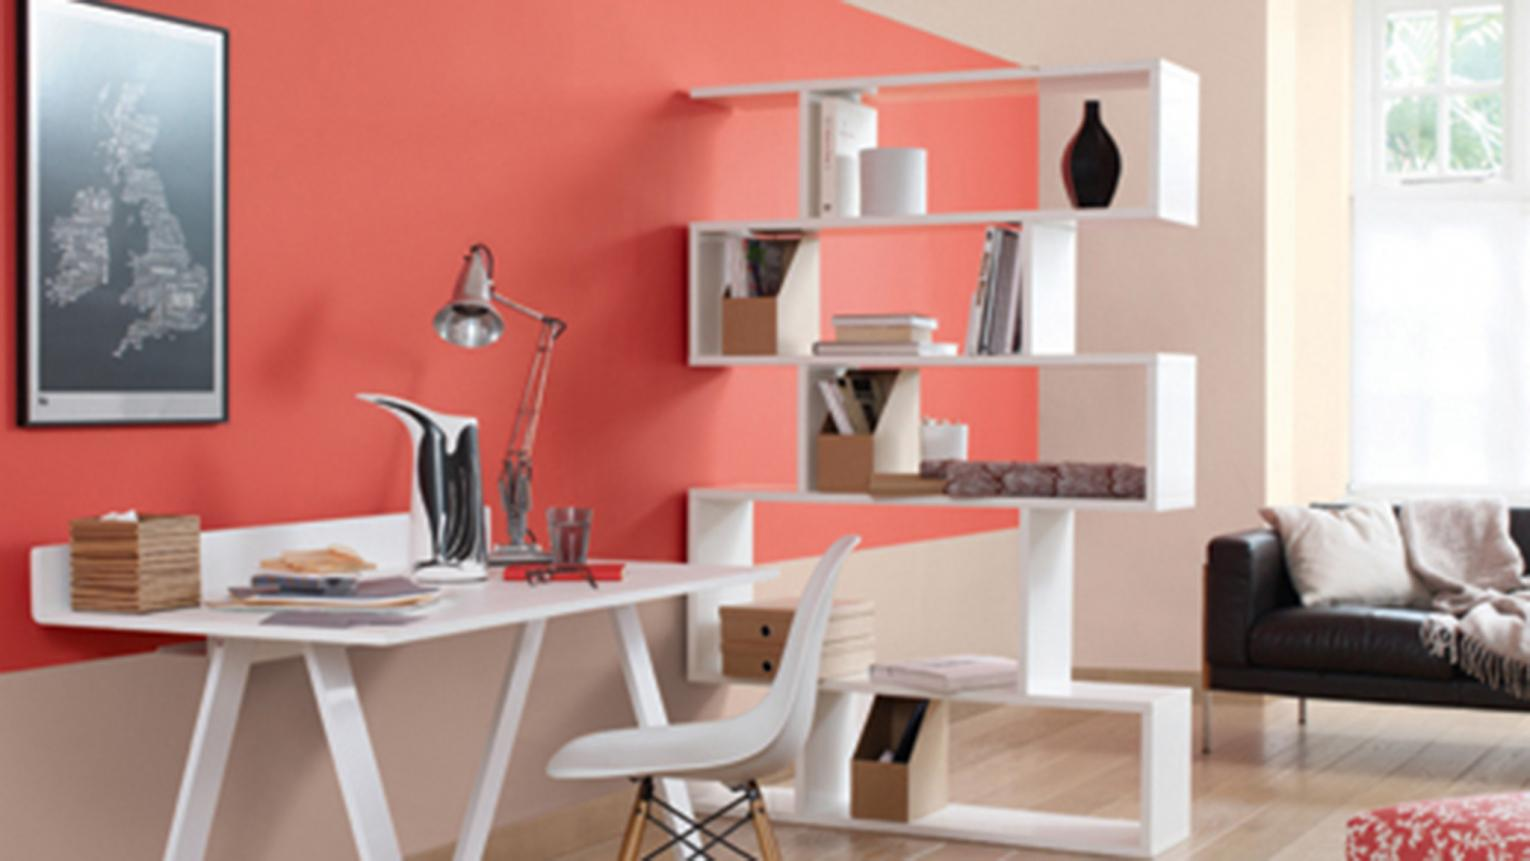 Pure-white shelving adds contrast to warm coral.